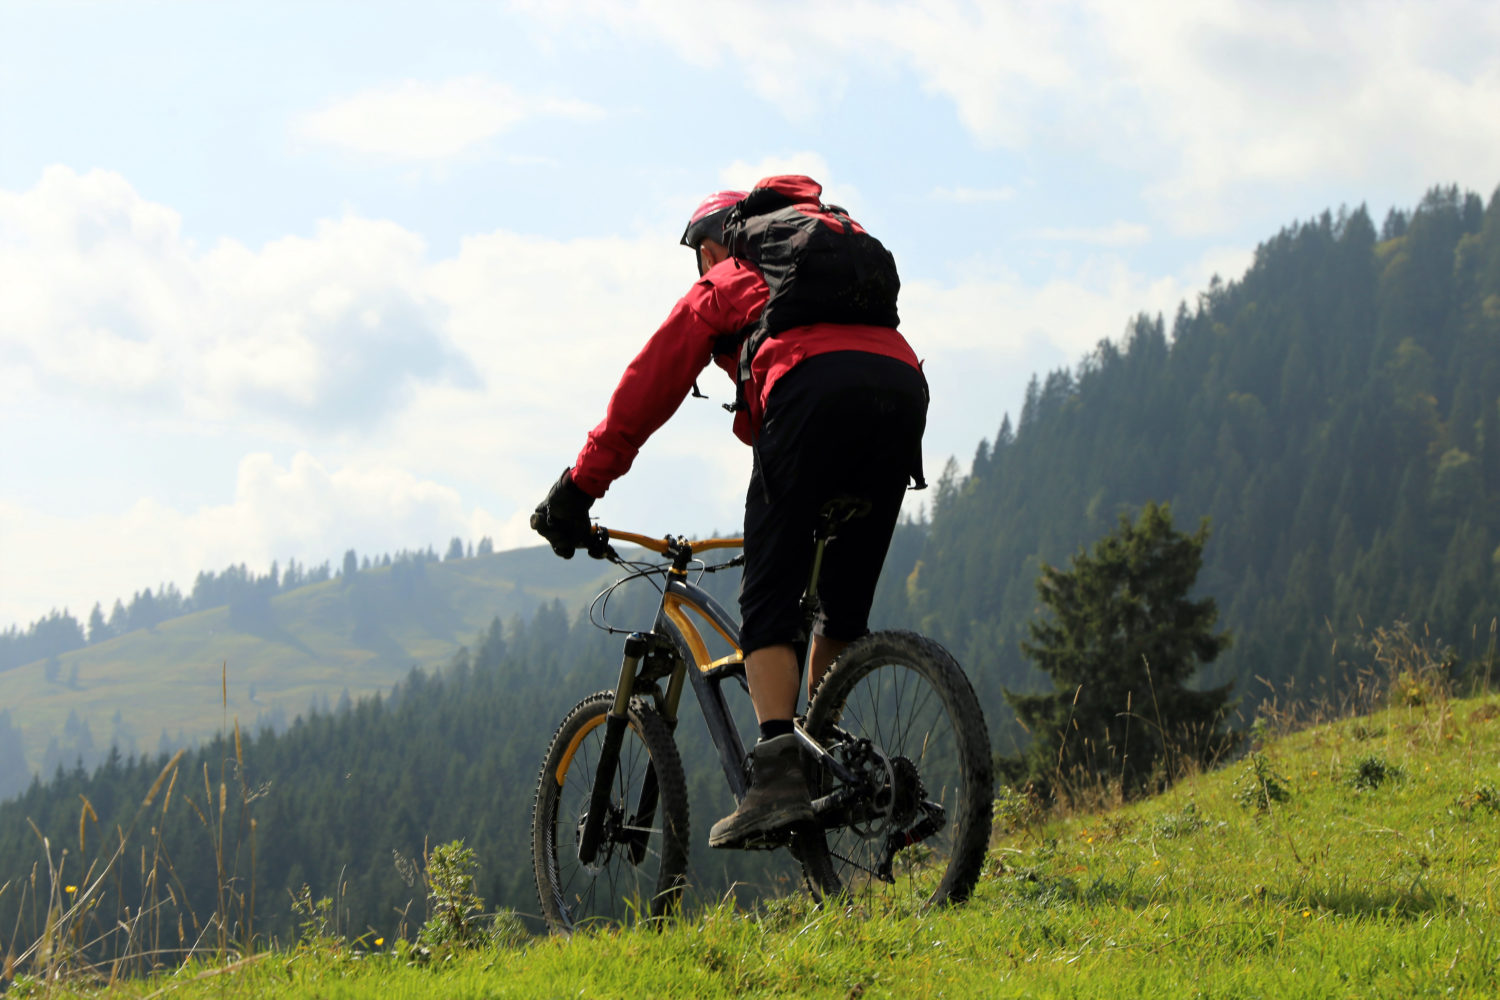 Man on a mountain bike in hilly countryside